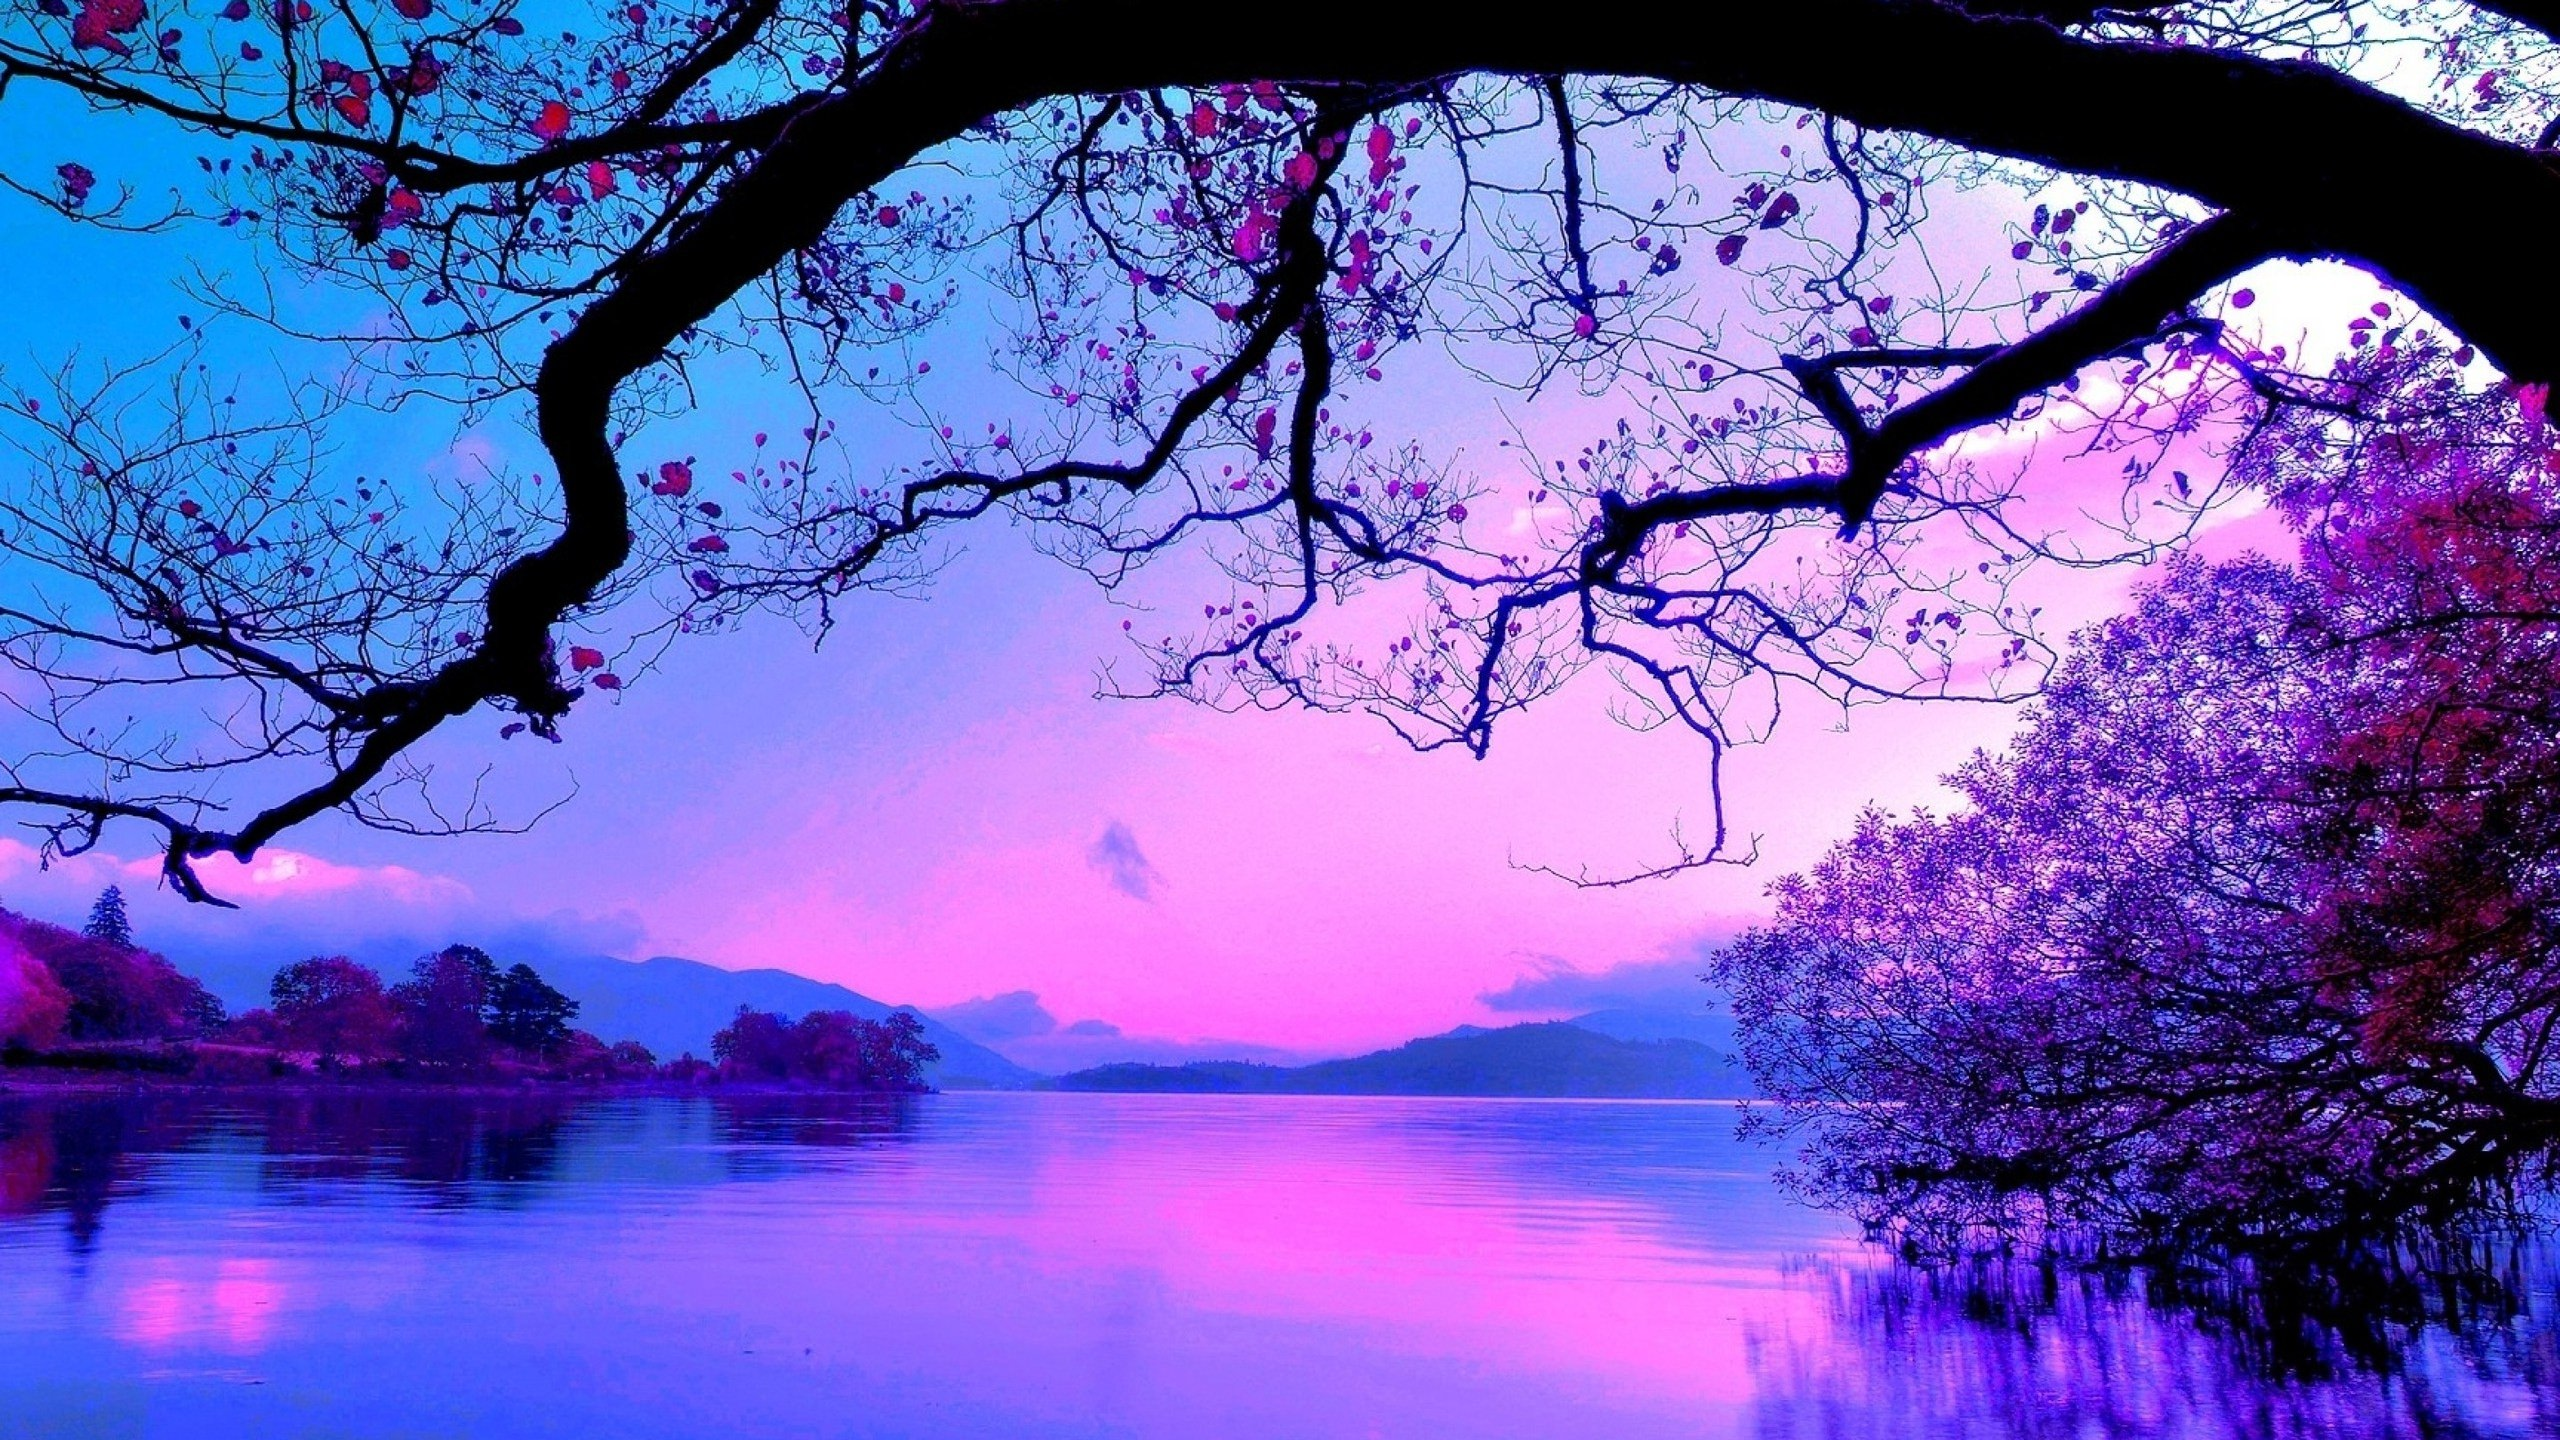 Blue And Purple Sunset 2560x1440 Wallpaper Teahub Io